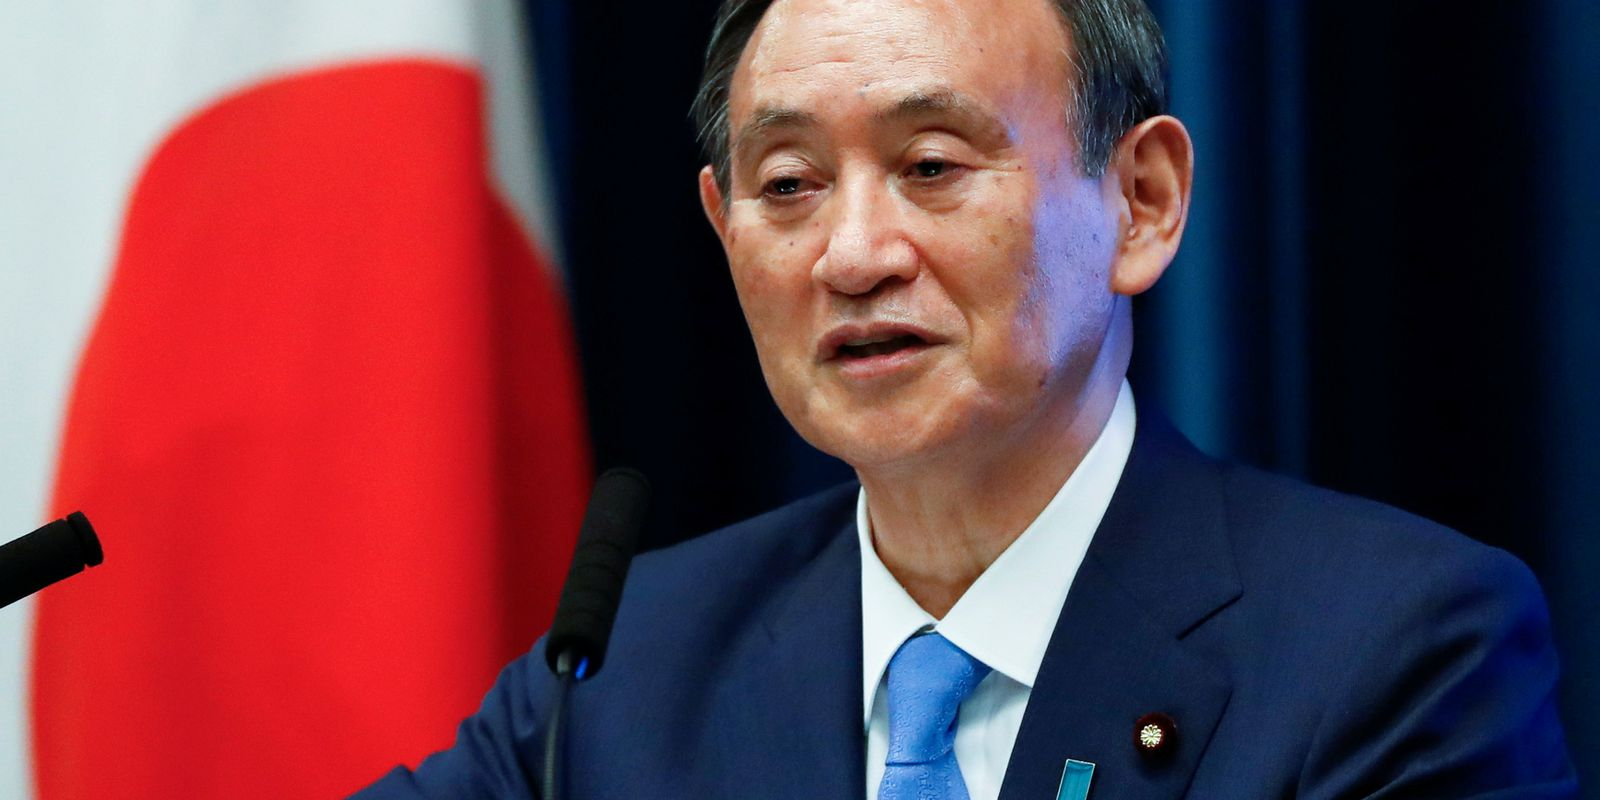 Japan's Prime Minister Yoshihide Suga attends a news conference on Japan's response to the coronavirus disease (COVID-19) outbreak, in Tokyo